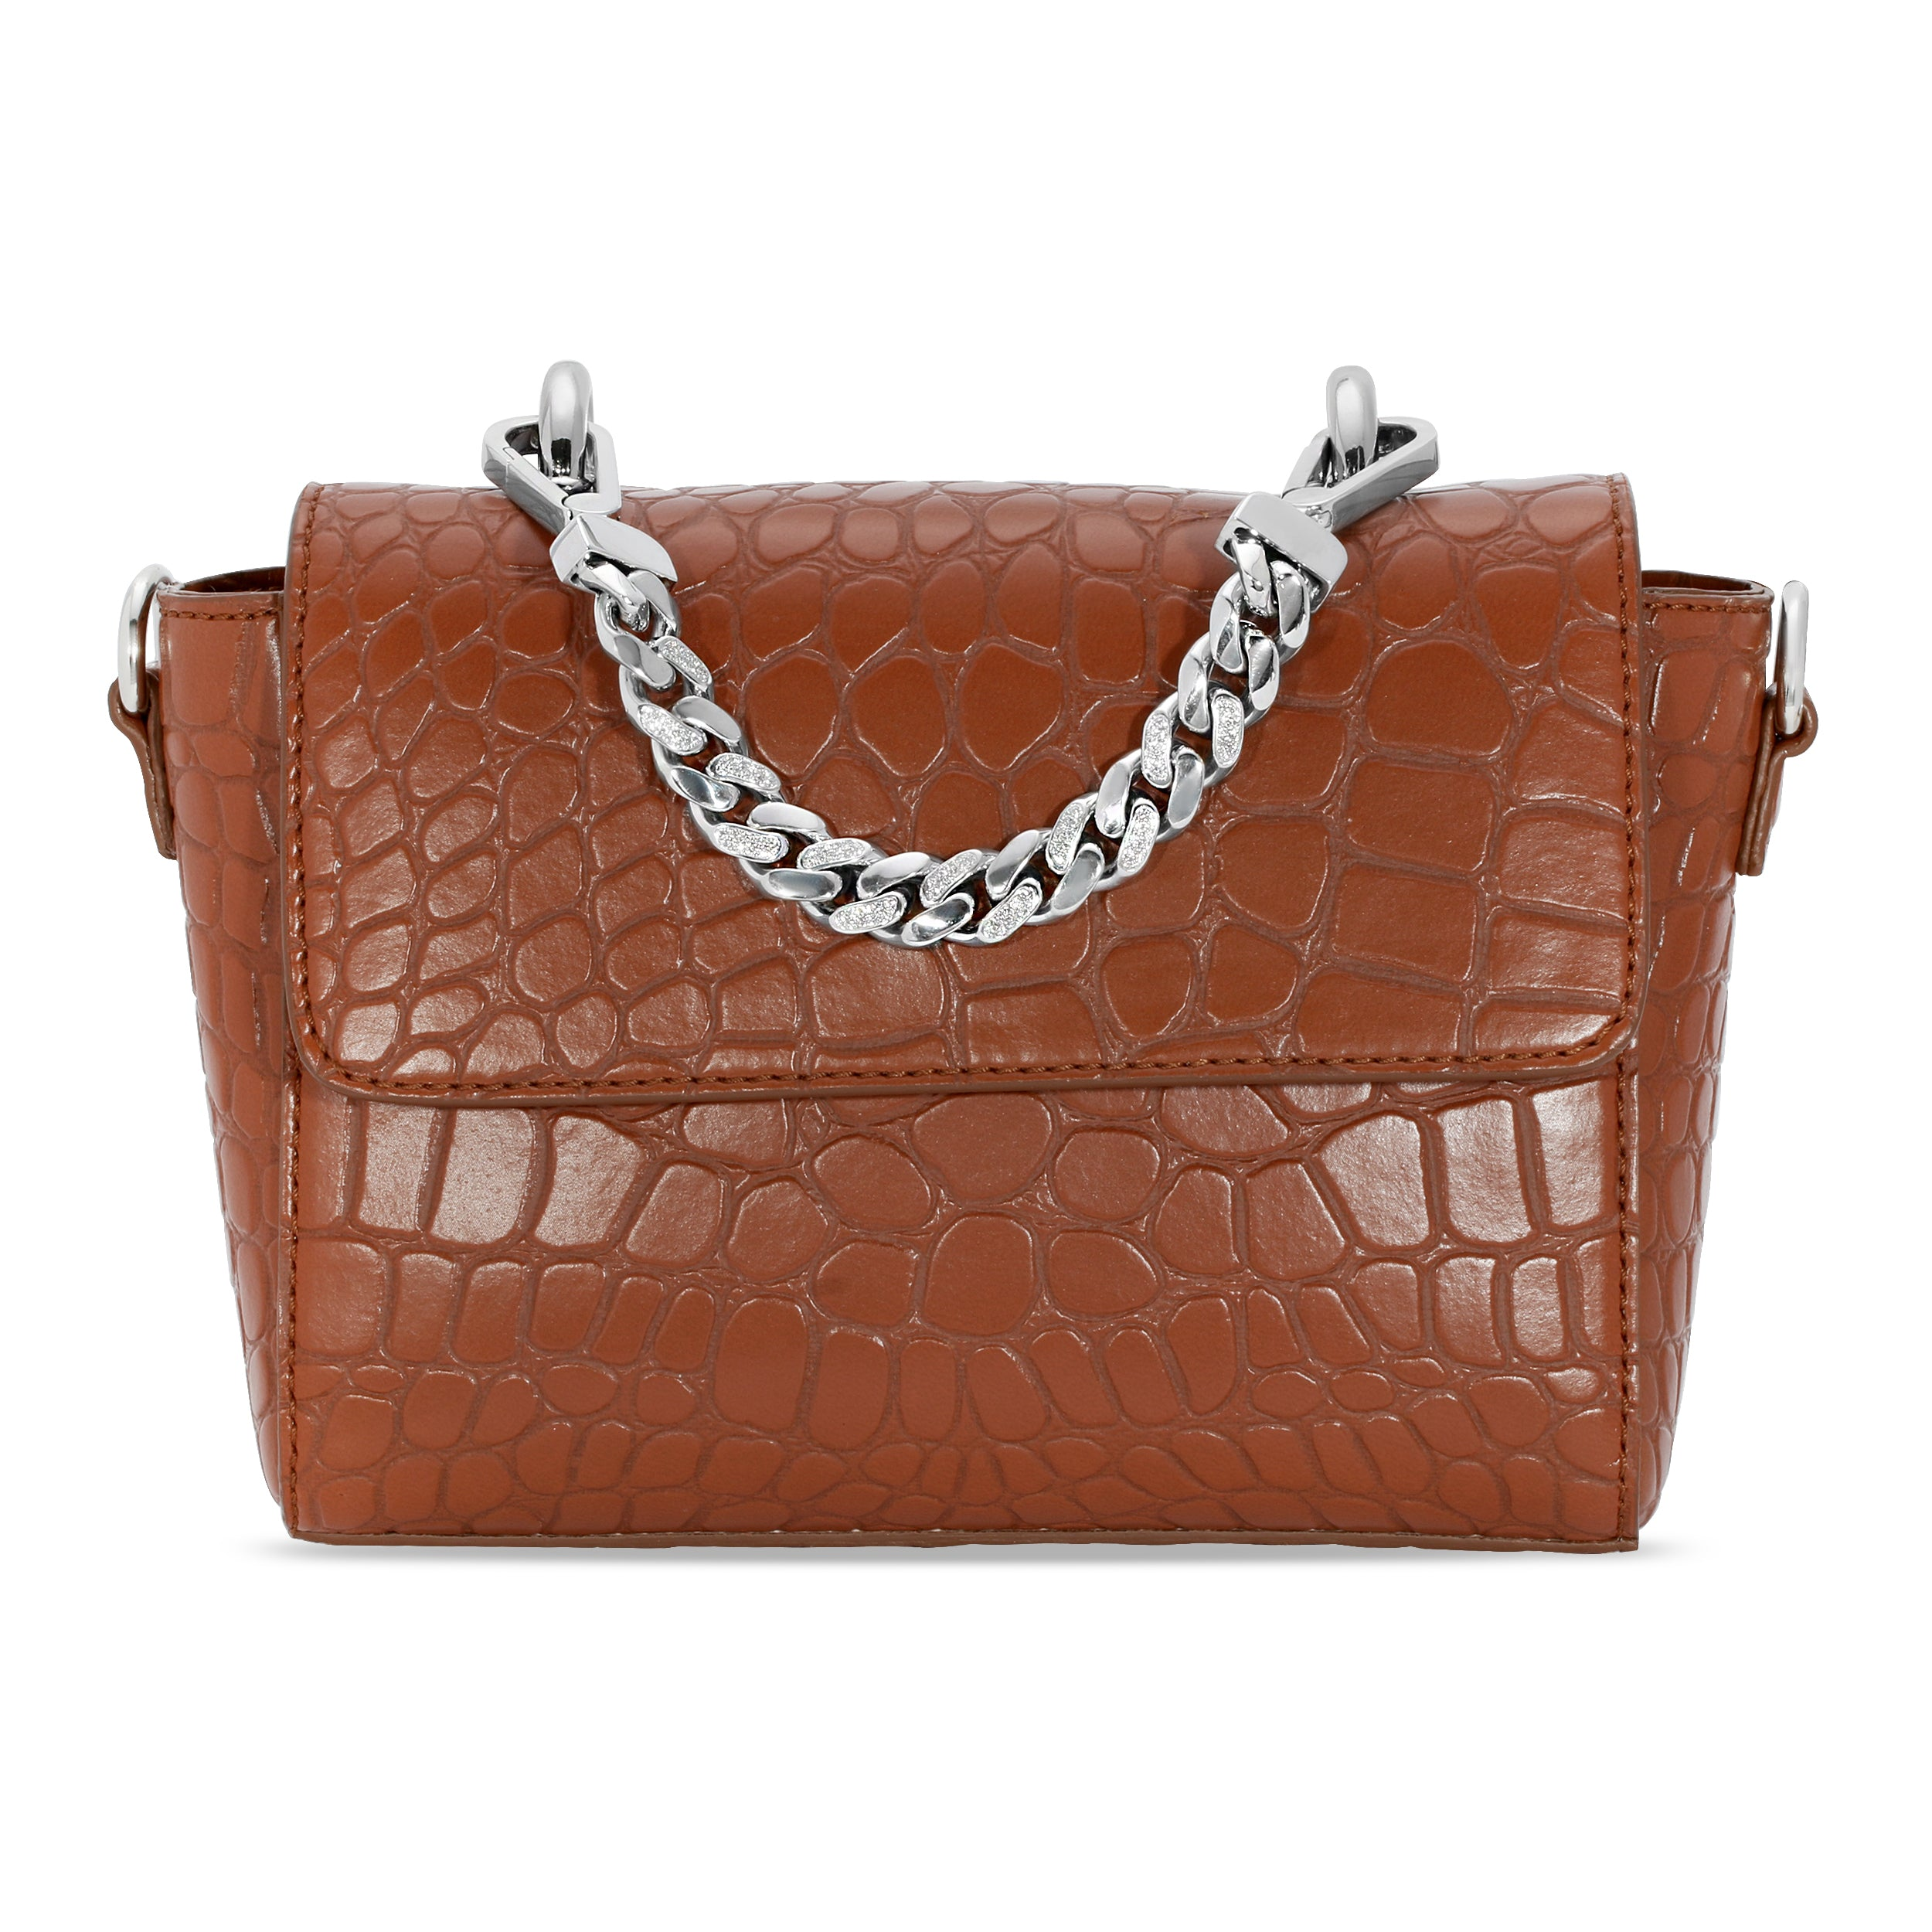 DIAMOND HANDLE HANDBAG